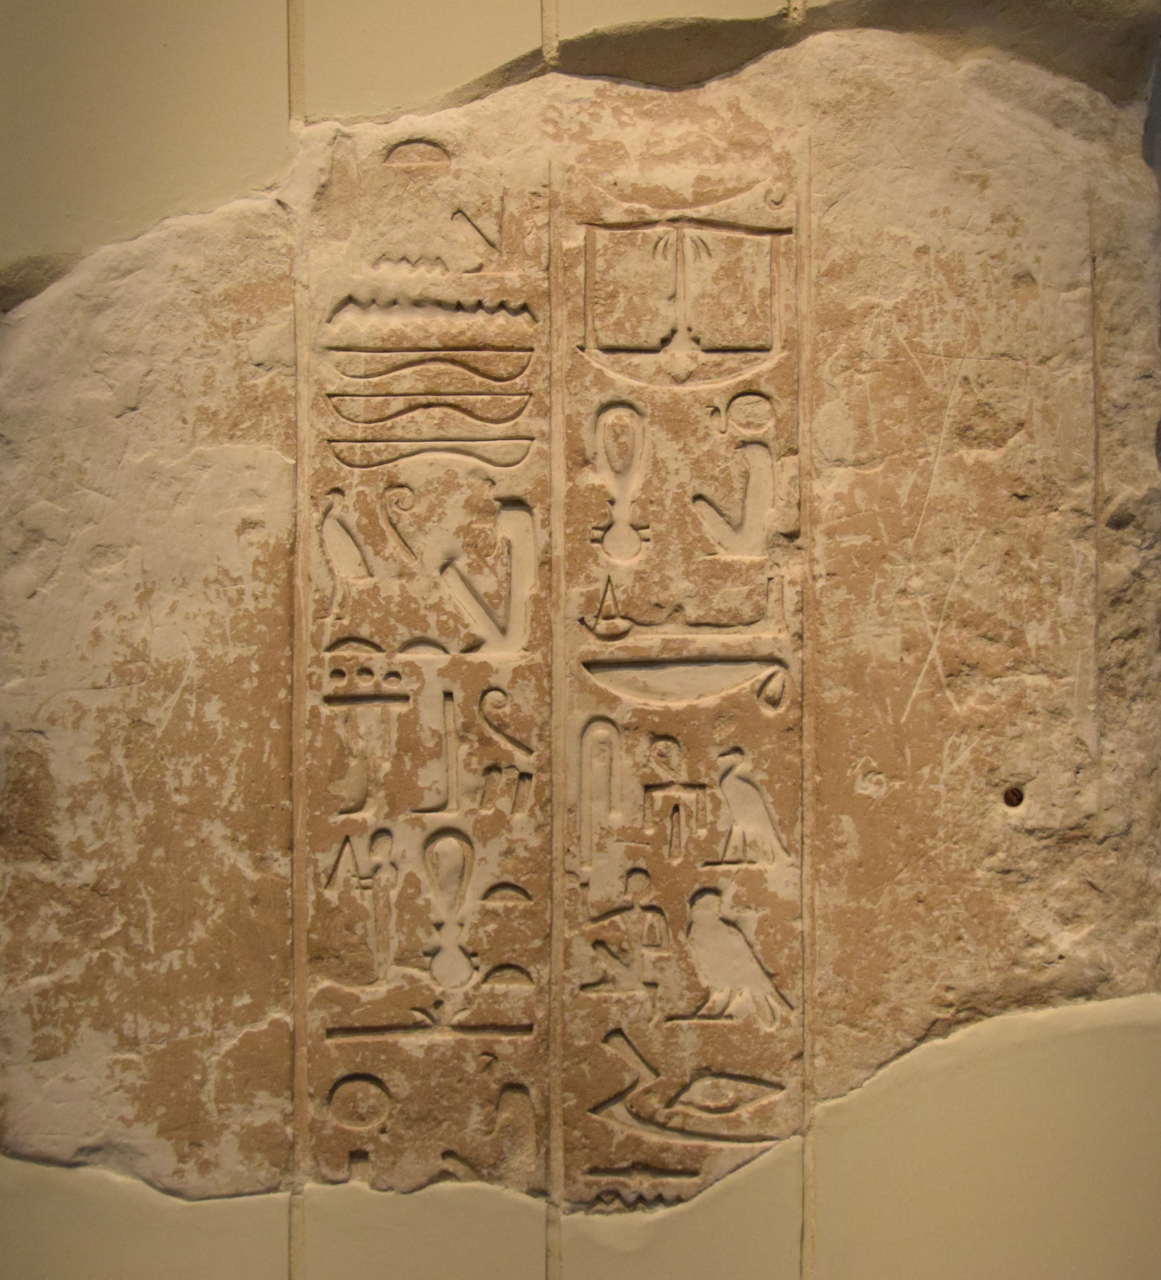 Httpwww Overlordsofchaos Comhtmlorigin Of The Word Jew Html: Pharaoh In Canaan Exhibit